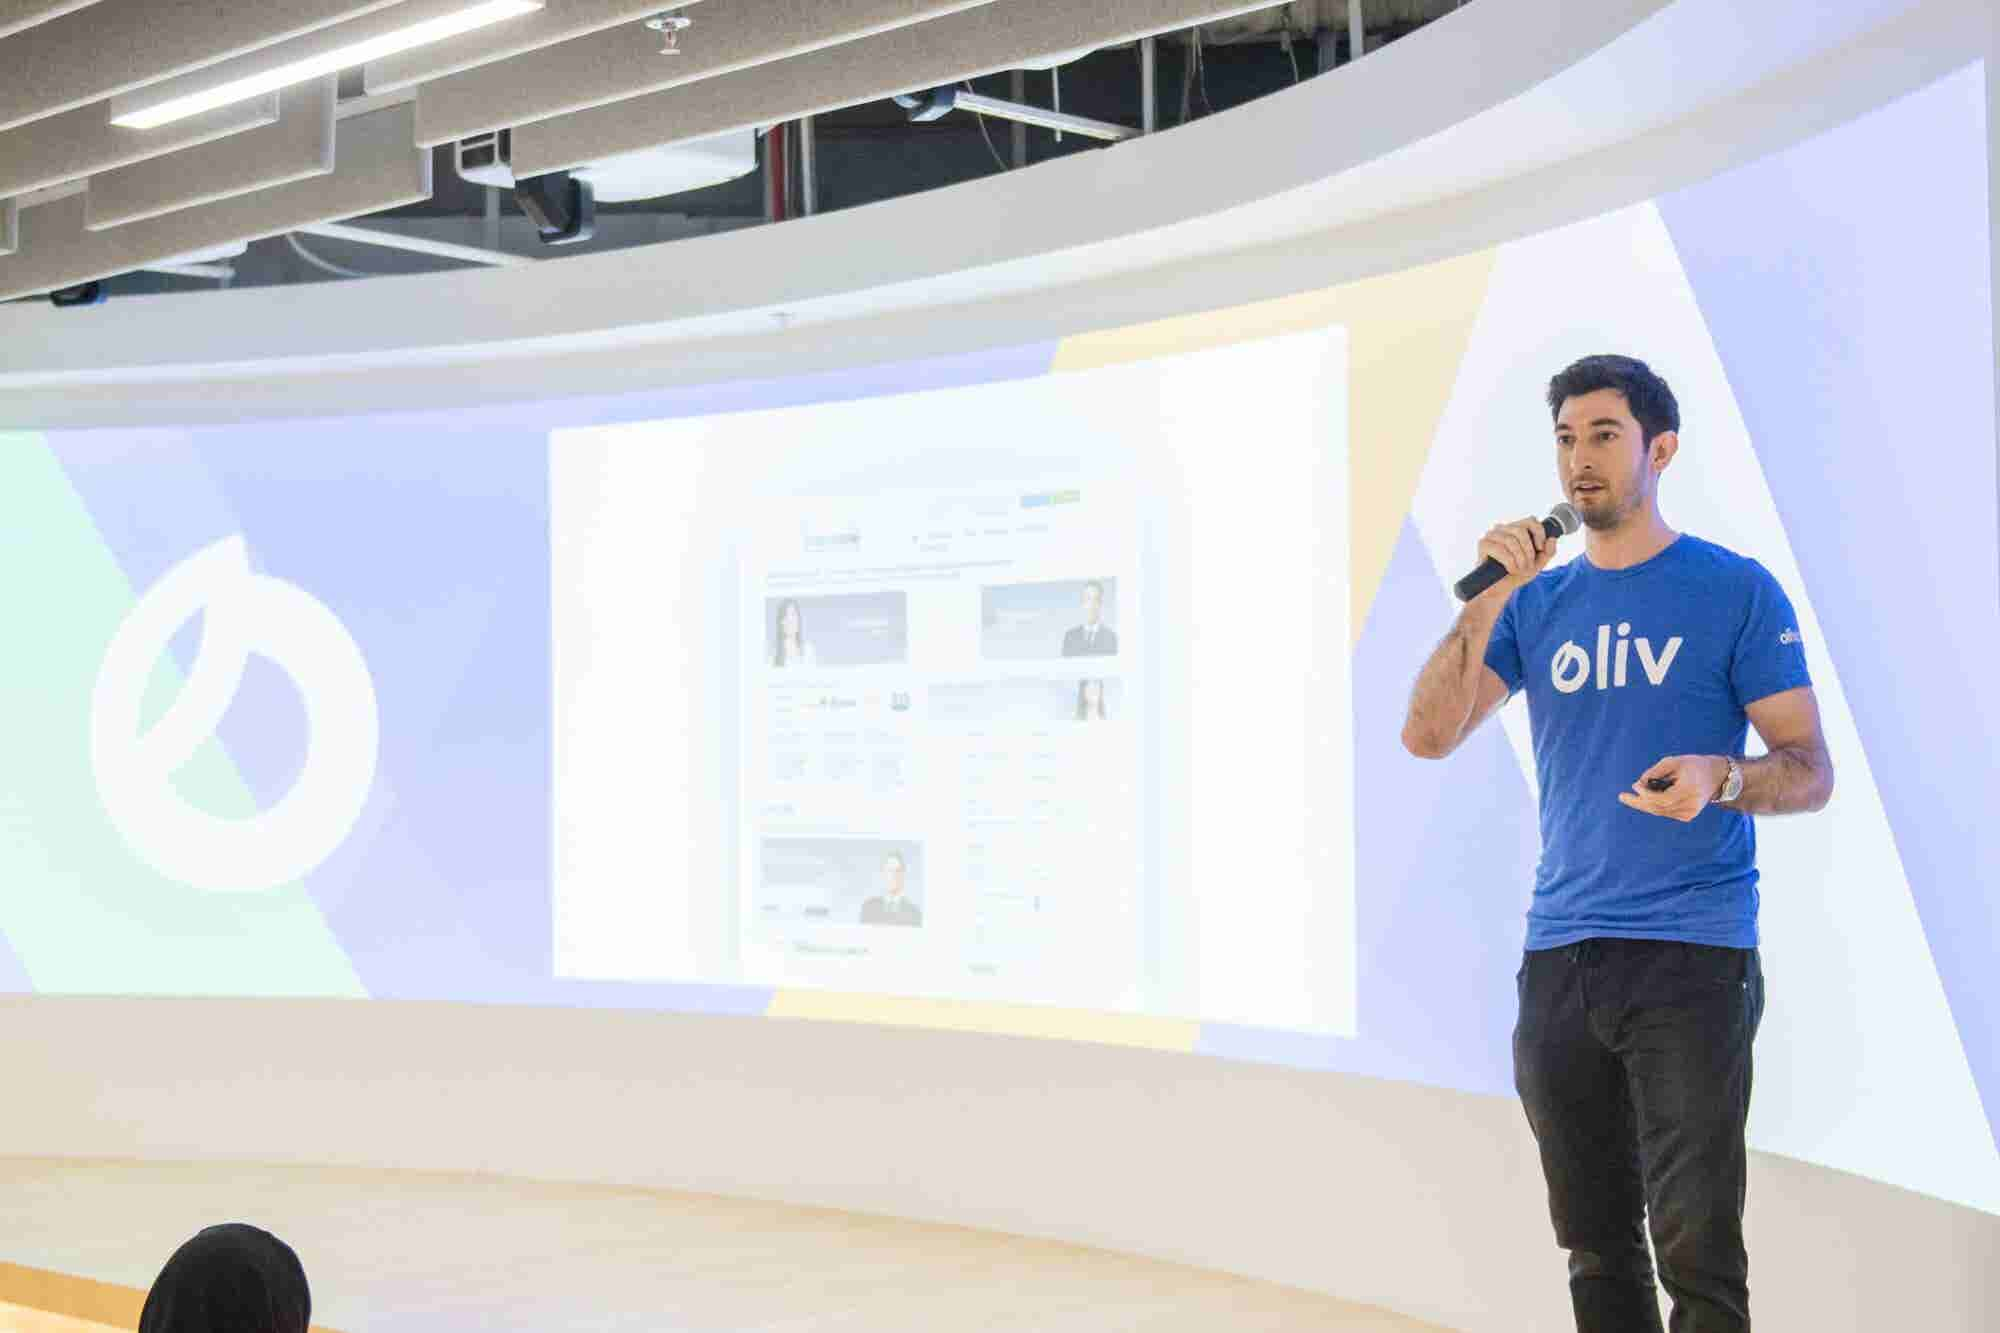 Follow The Leader: Jean-Michel Gauthier, CEO, Oliv